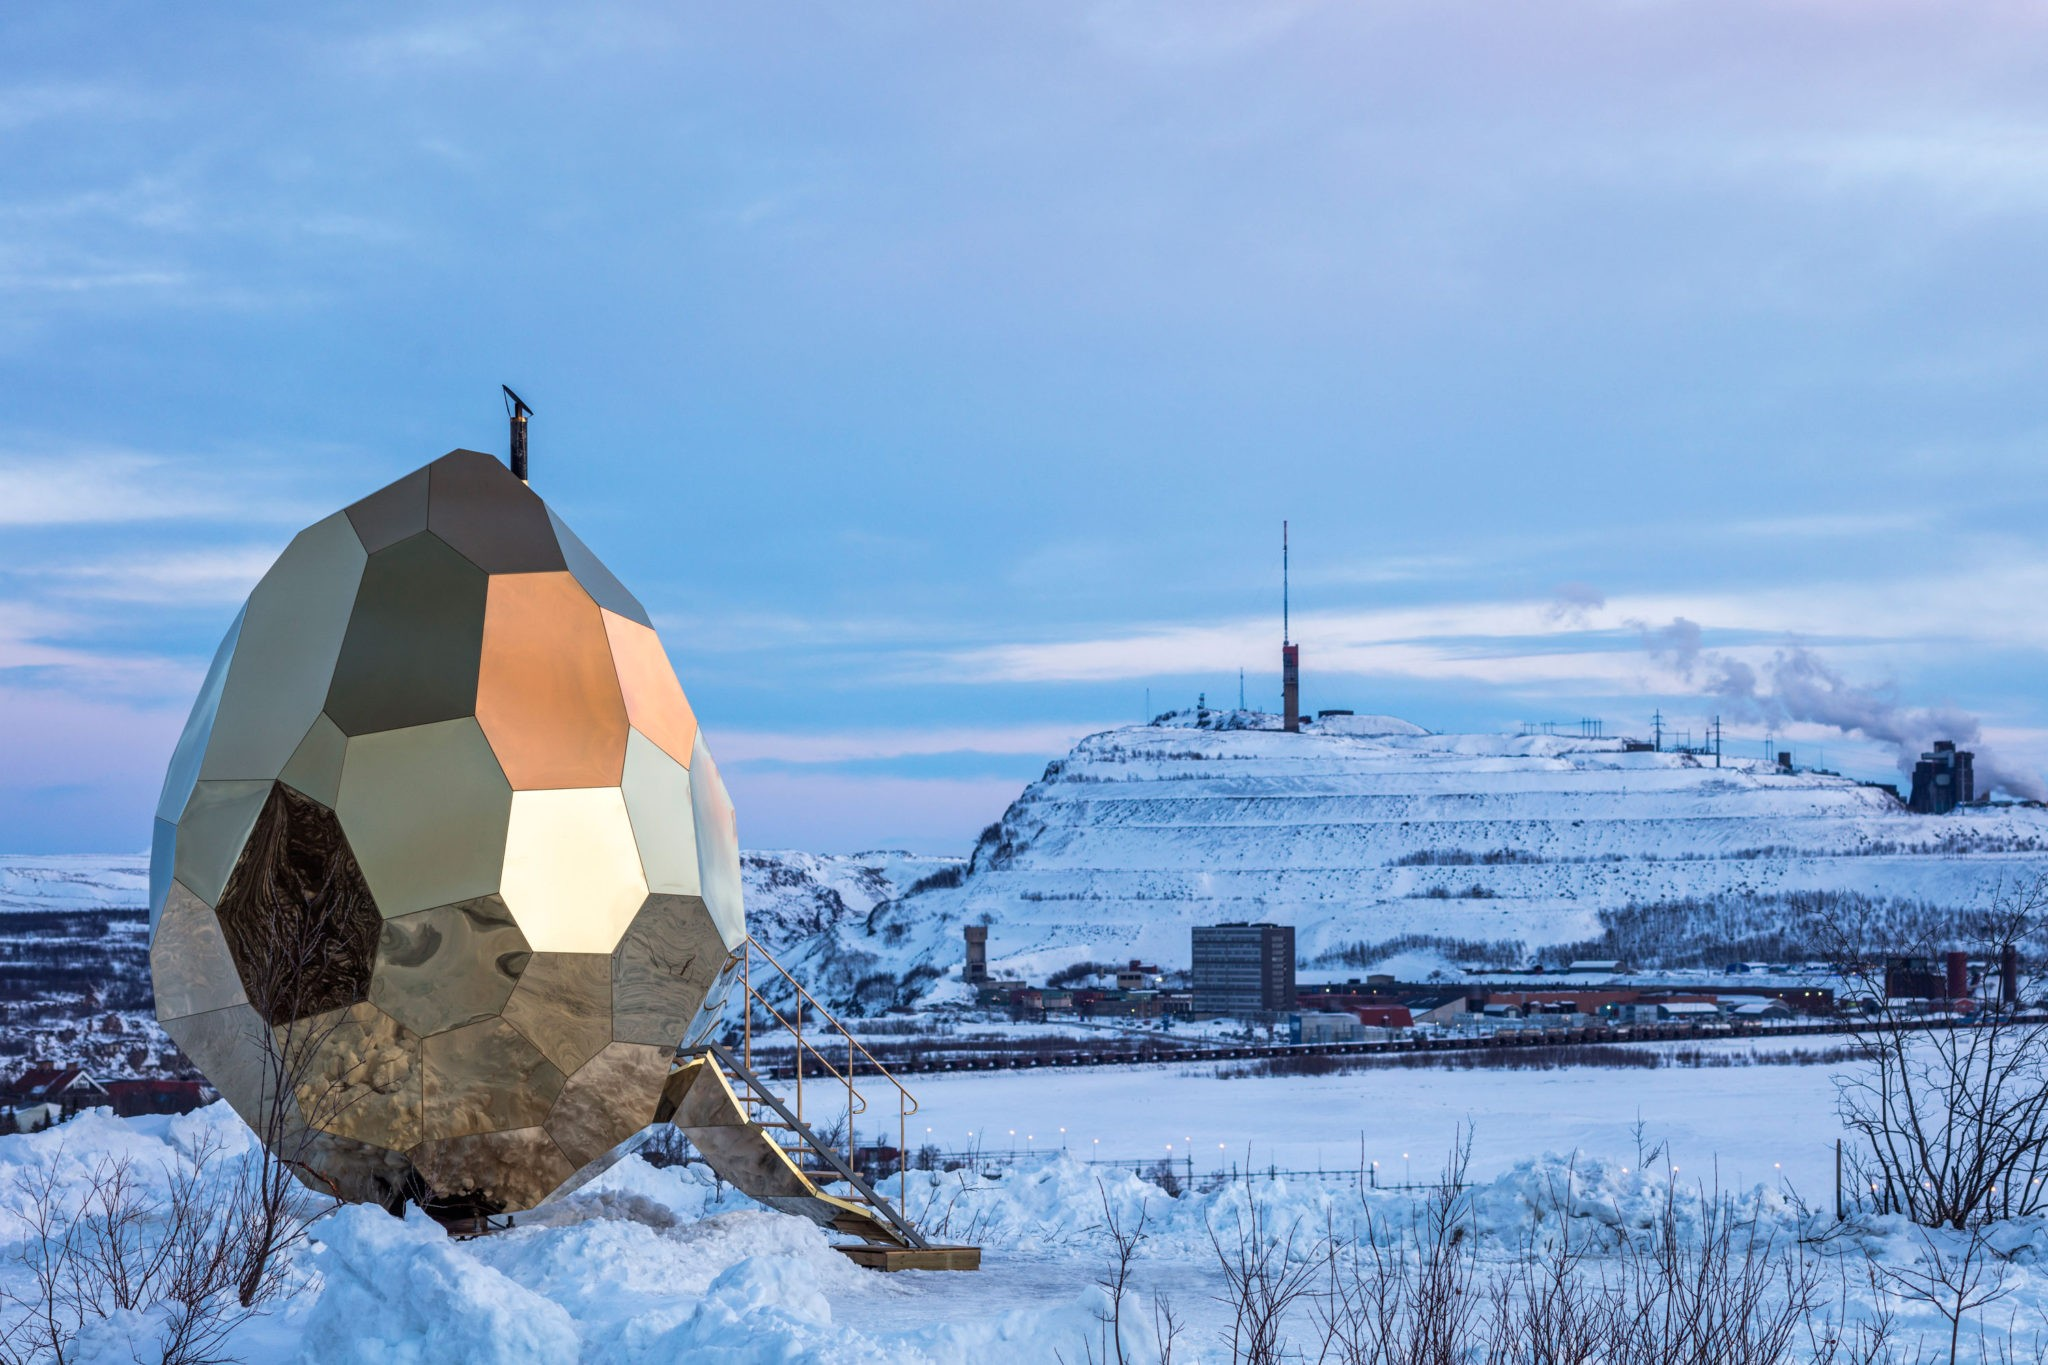 This outdoor sauna, the Solar Egg, was commissioned by Riksbyggen. Artist duo Bigert & Bergström built this sauna where the gold surface reflects both the iron ore and the installation's snowy environment in Lapland, above the Arctic Circle. This region switches between all day darkness and 24 hour midnight sun.